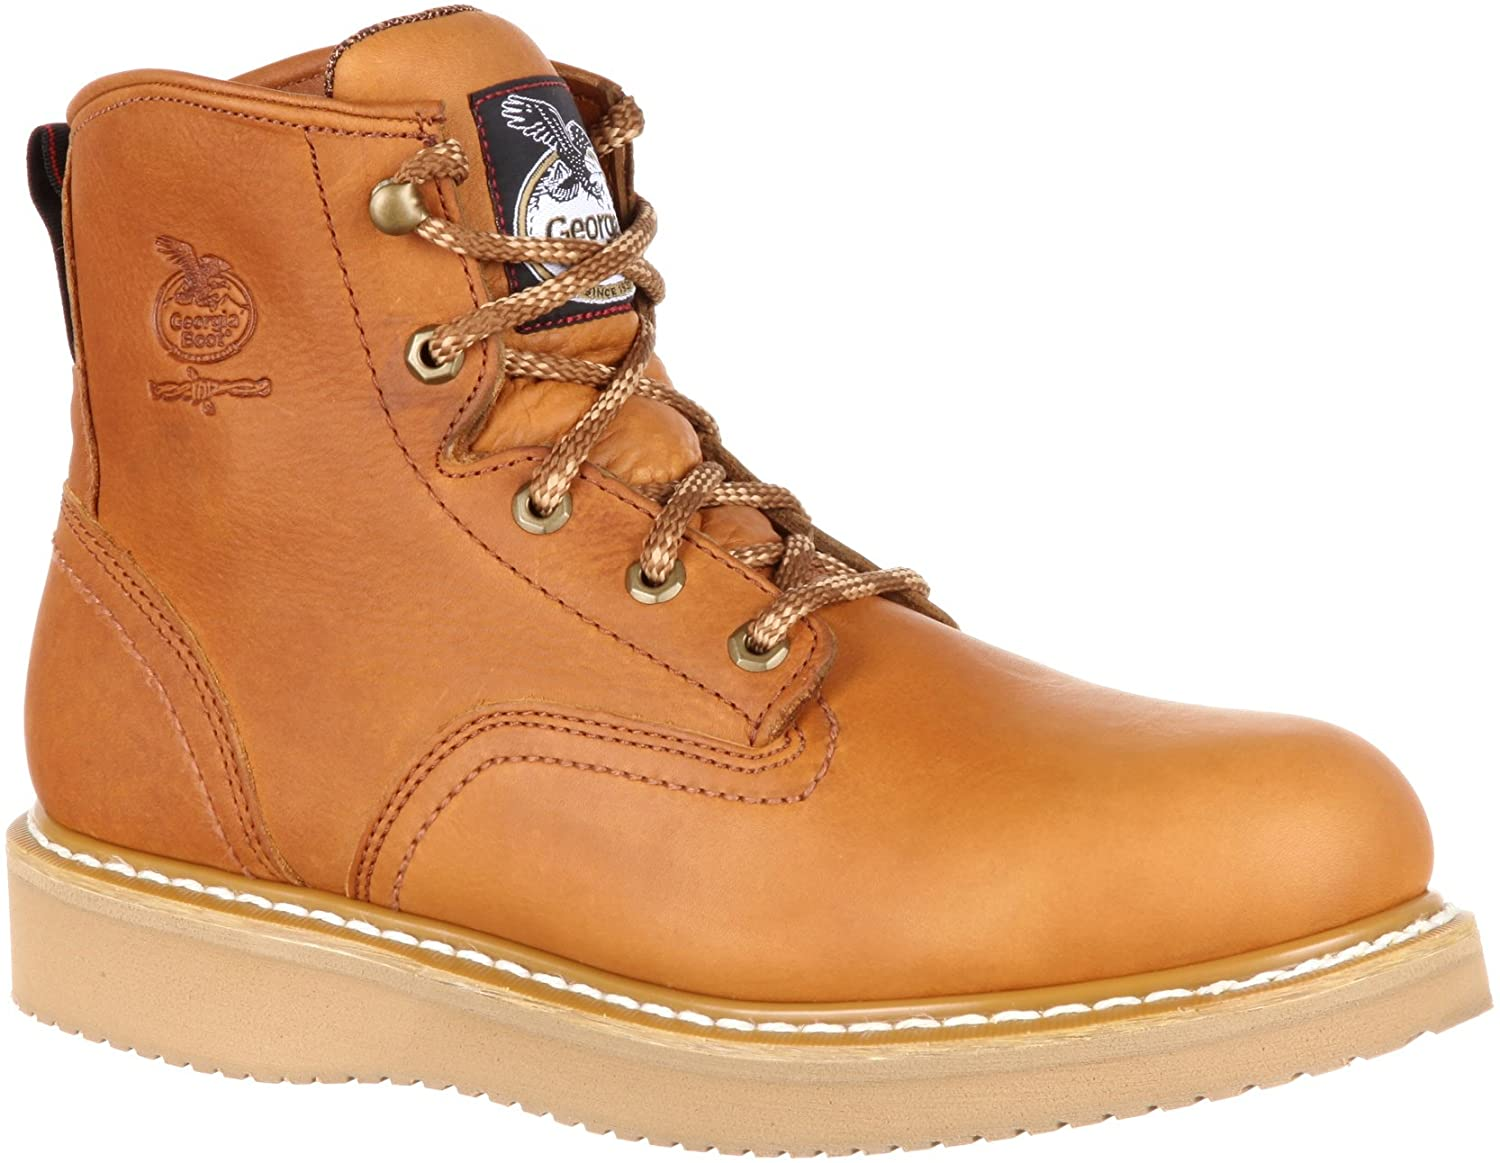 Georgia Men's Barracuda Gold Wedge Work Boots-G6152 (M5.5)